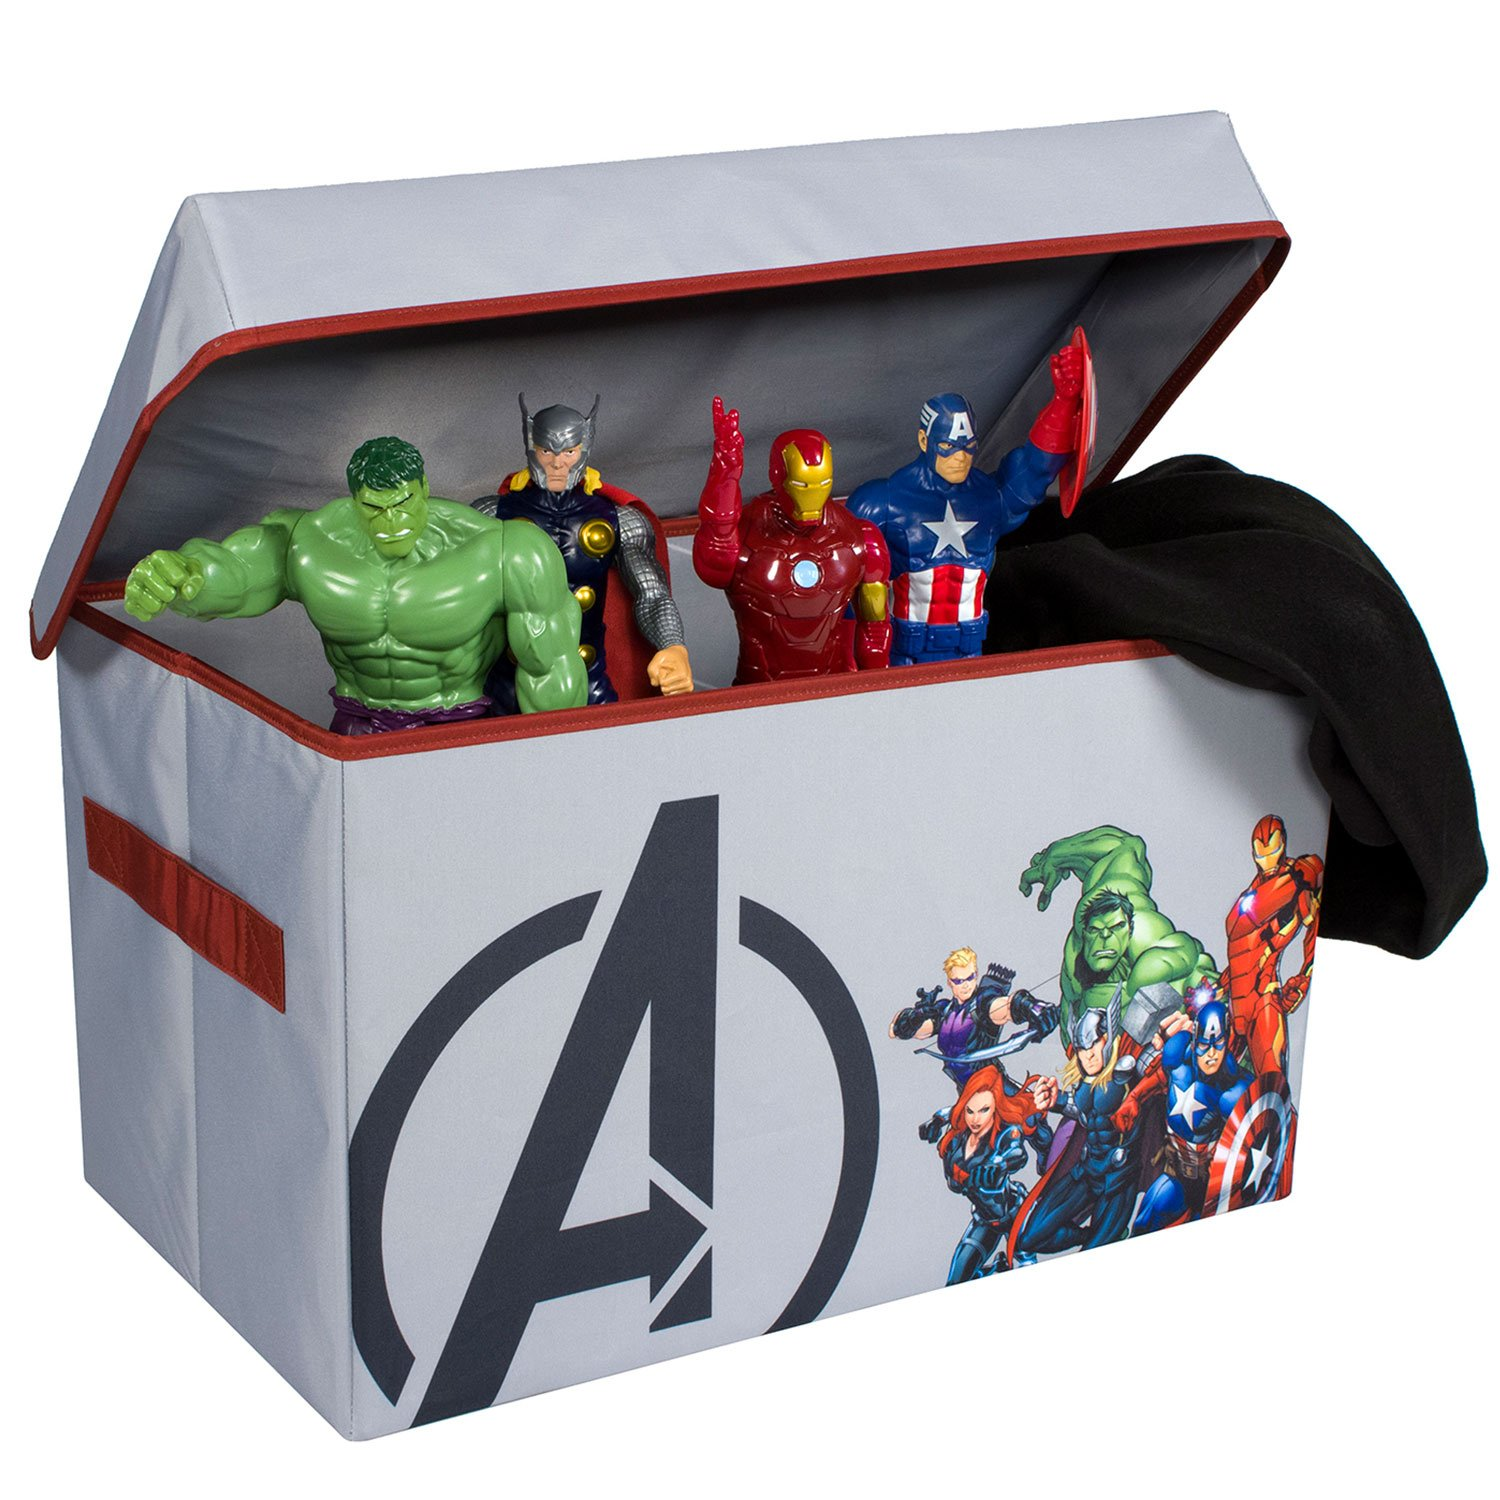 Princess Toys Box Storage Kids Girls Chest Bedroom Clothes: Amazon.com: Avengers Collapsible Kids Laundry Hamper By